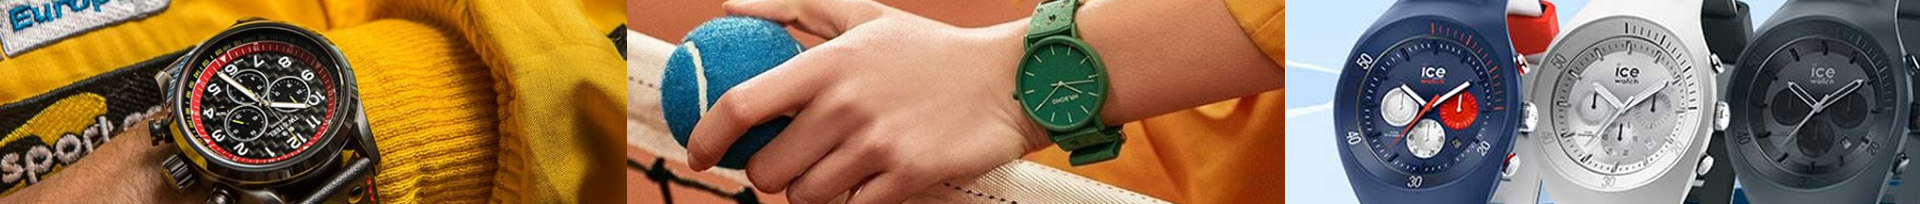 sports-watches-category-banner.jpg